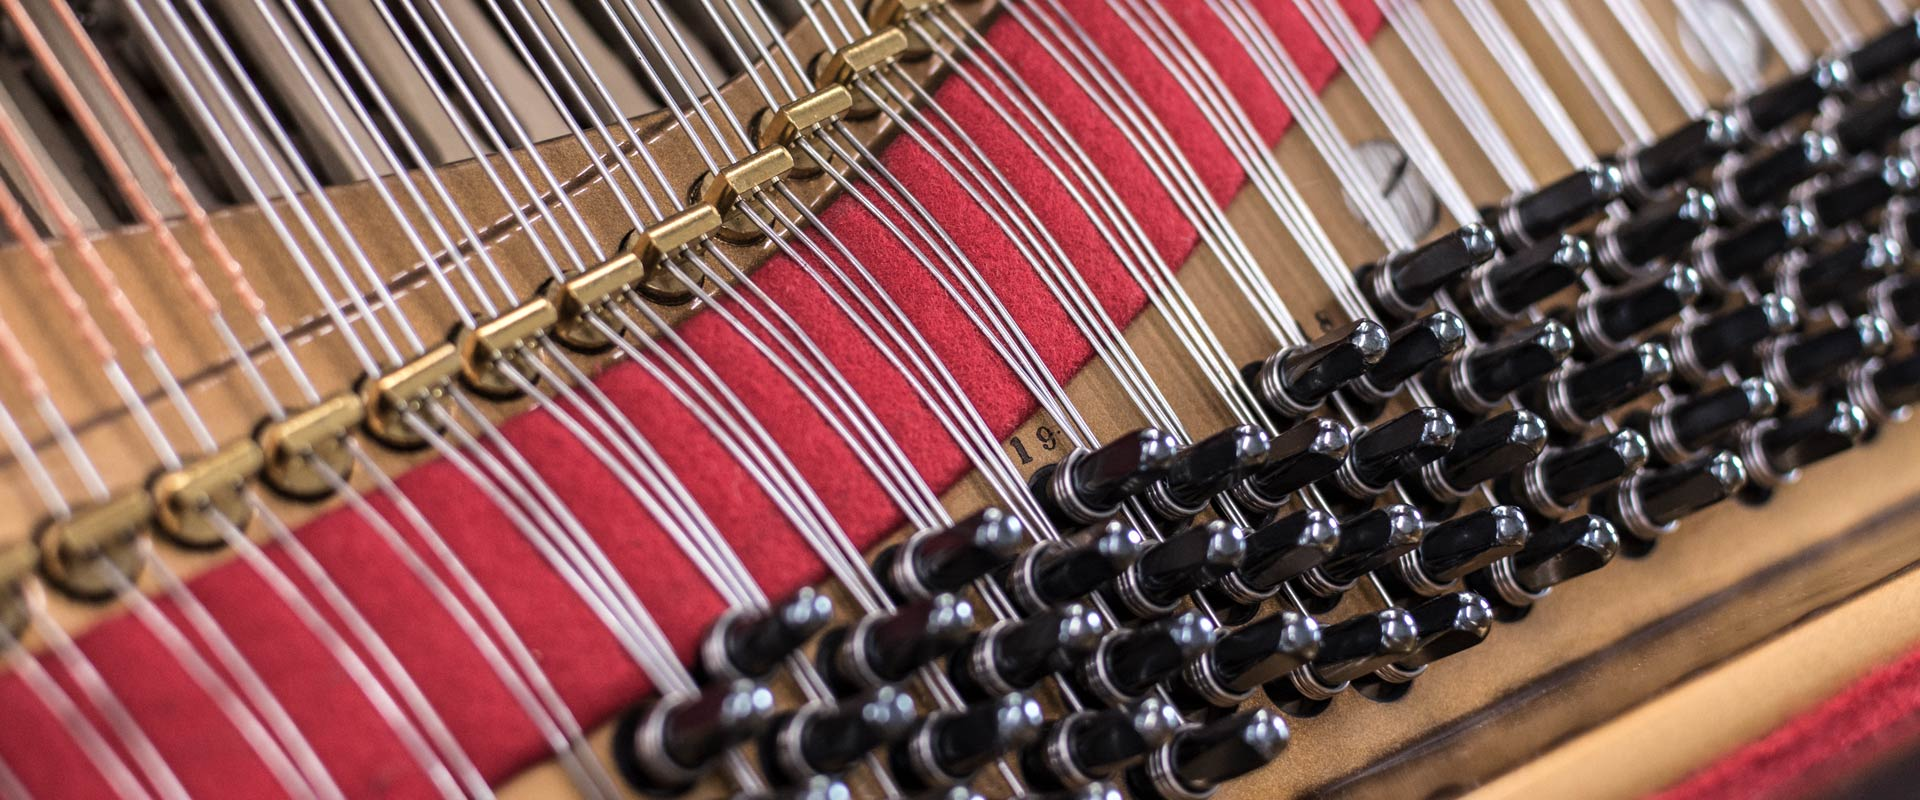 How Often Should I Have My Piano Tuned? - Piano Tuning & Service